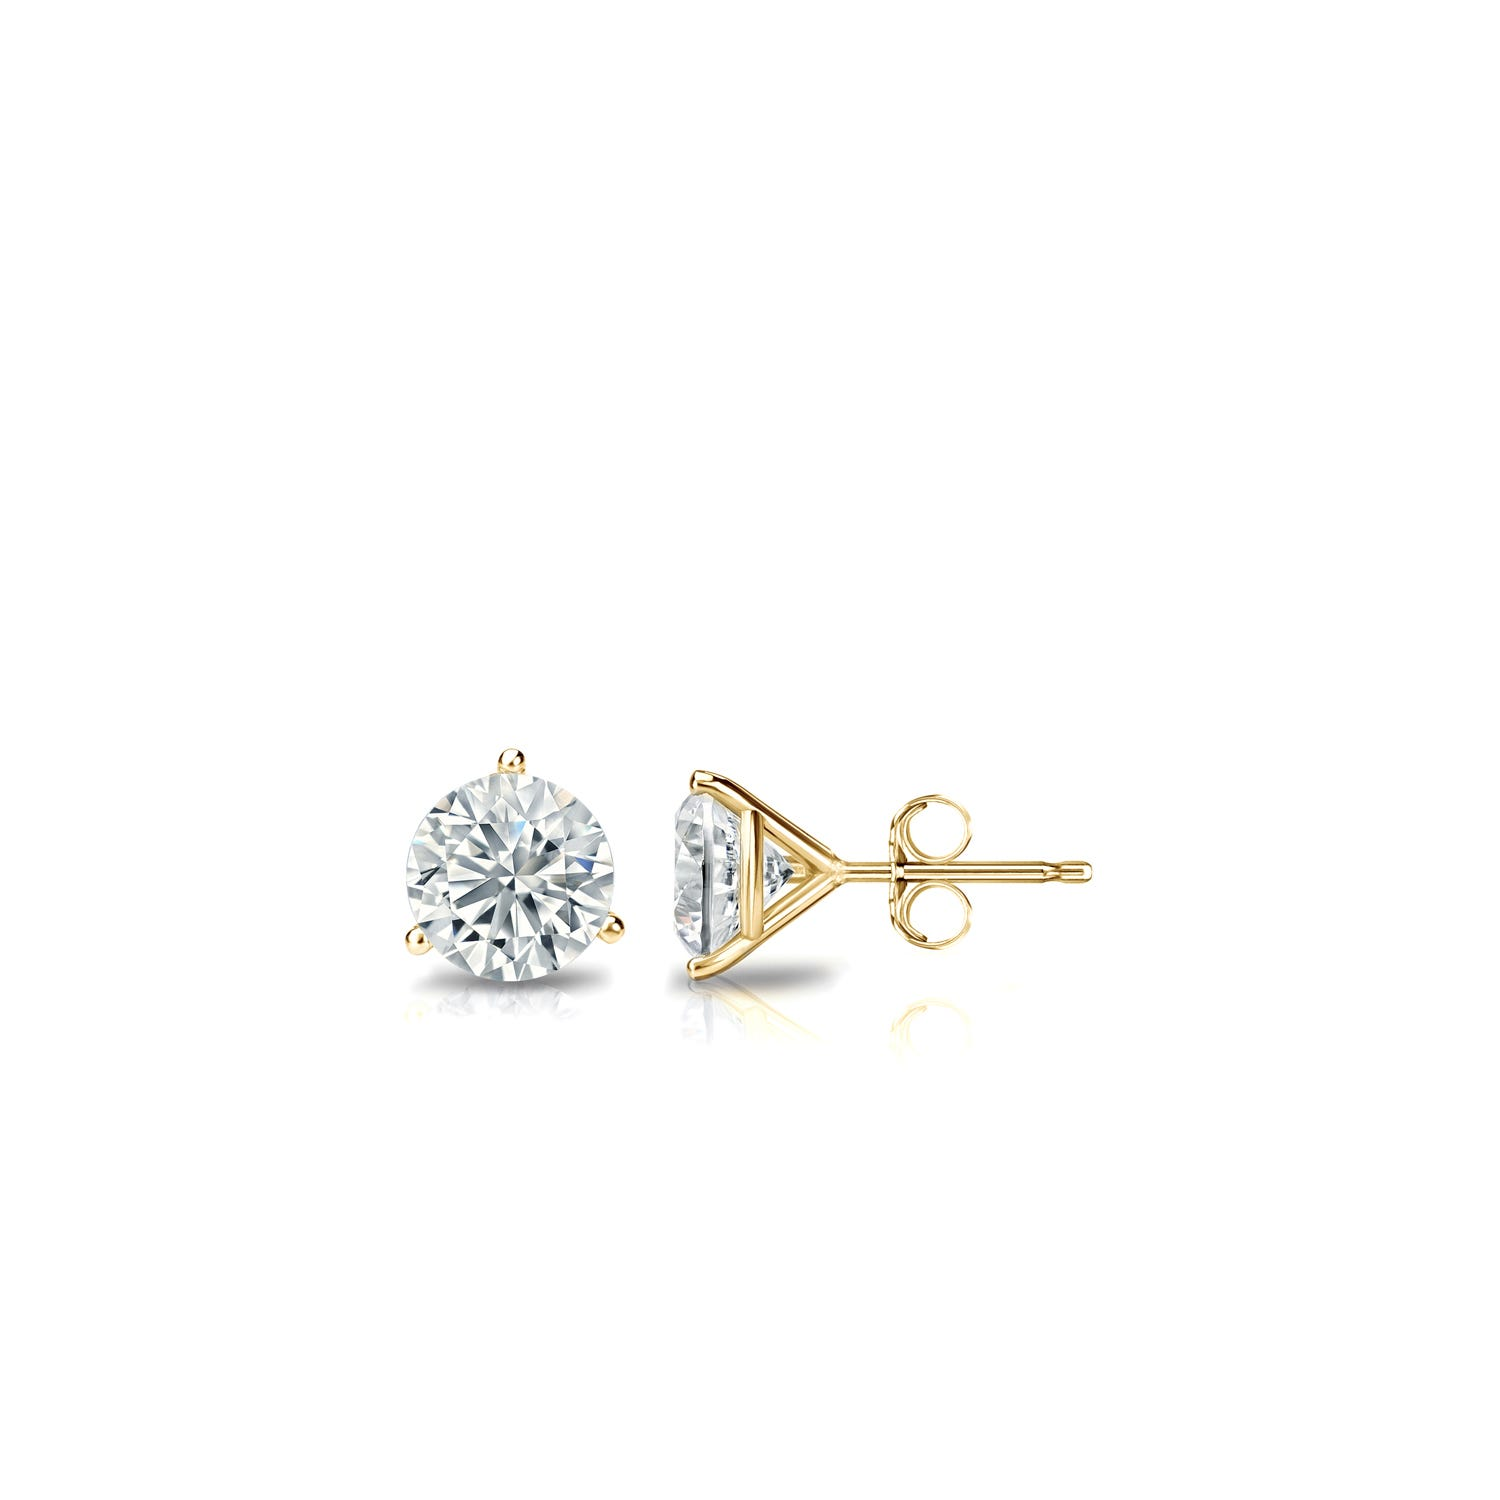 1/6 CTTW Round Diamond Solitaire Stud Earrings IJ I1 in 14K Yellow Gold 3-Prong Setting